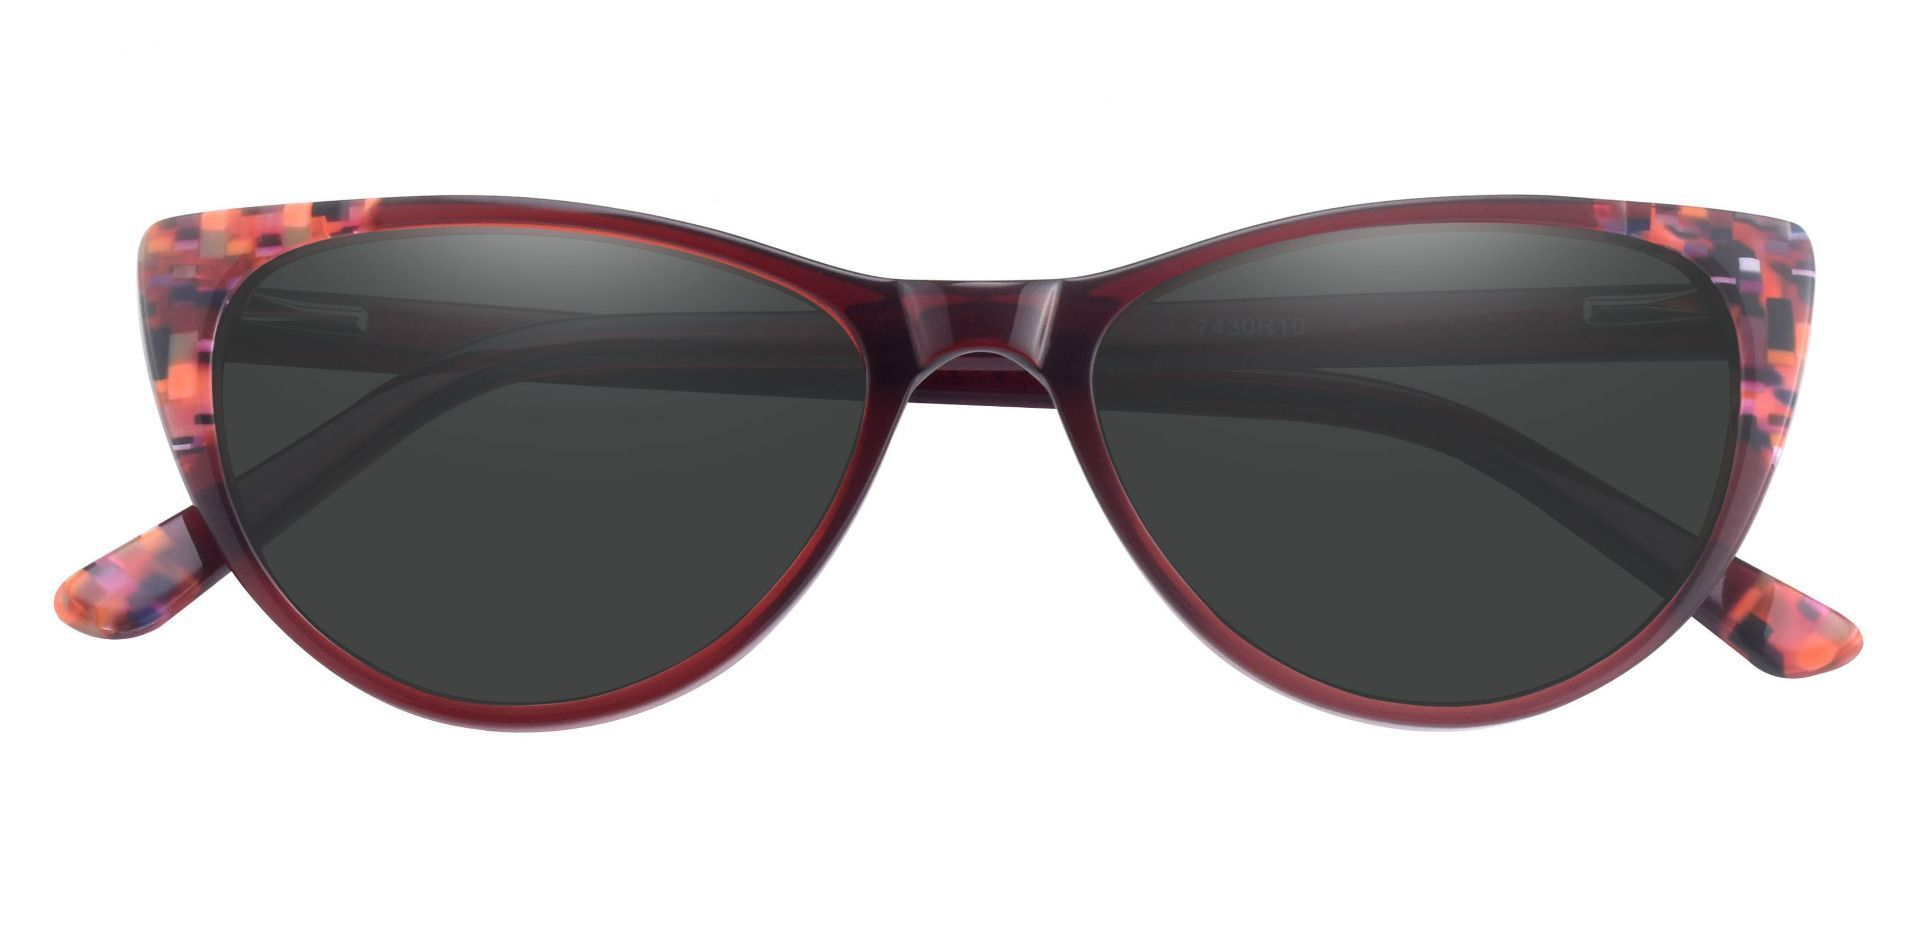 Plumeria Cat Eye Prescription Sunglasses - Red Frame With Gray Lenses